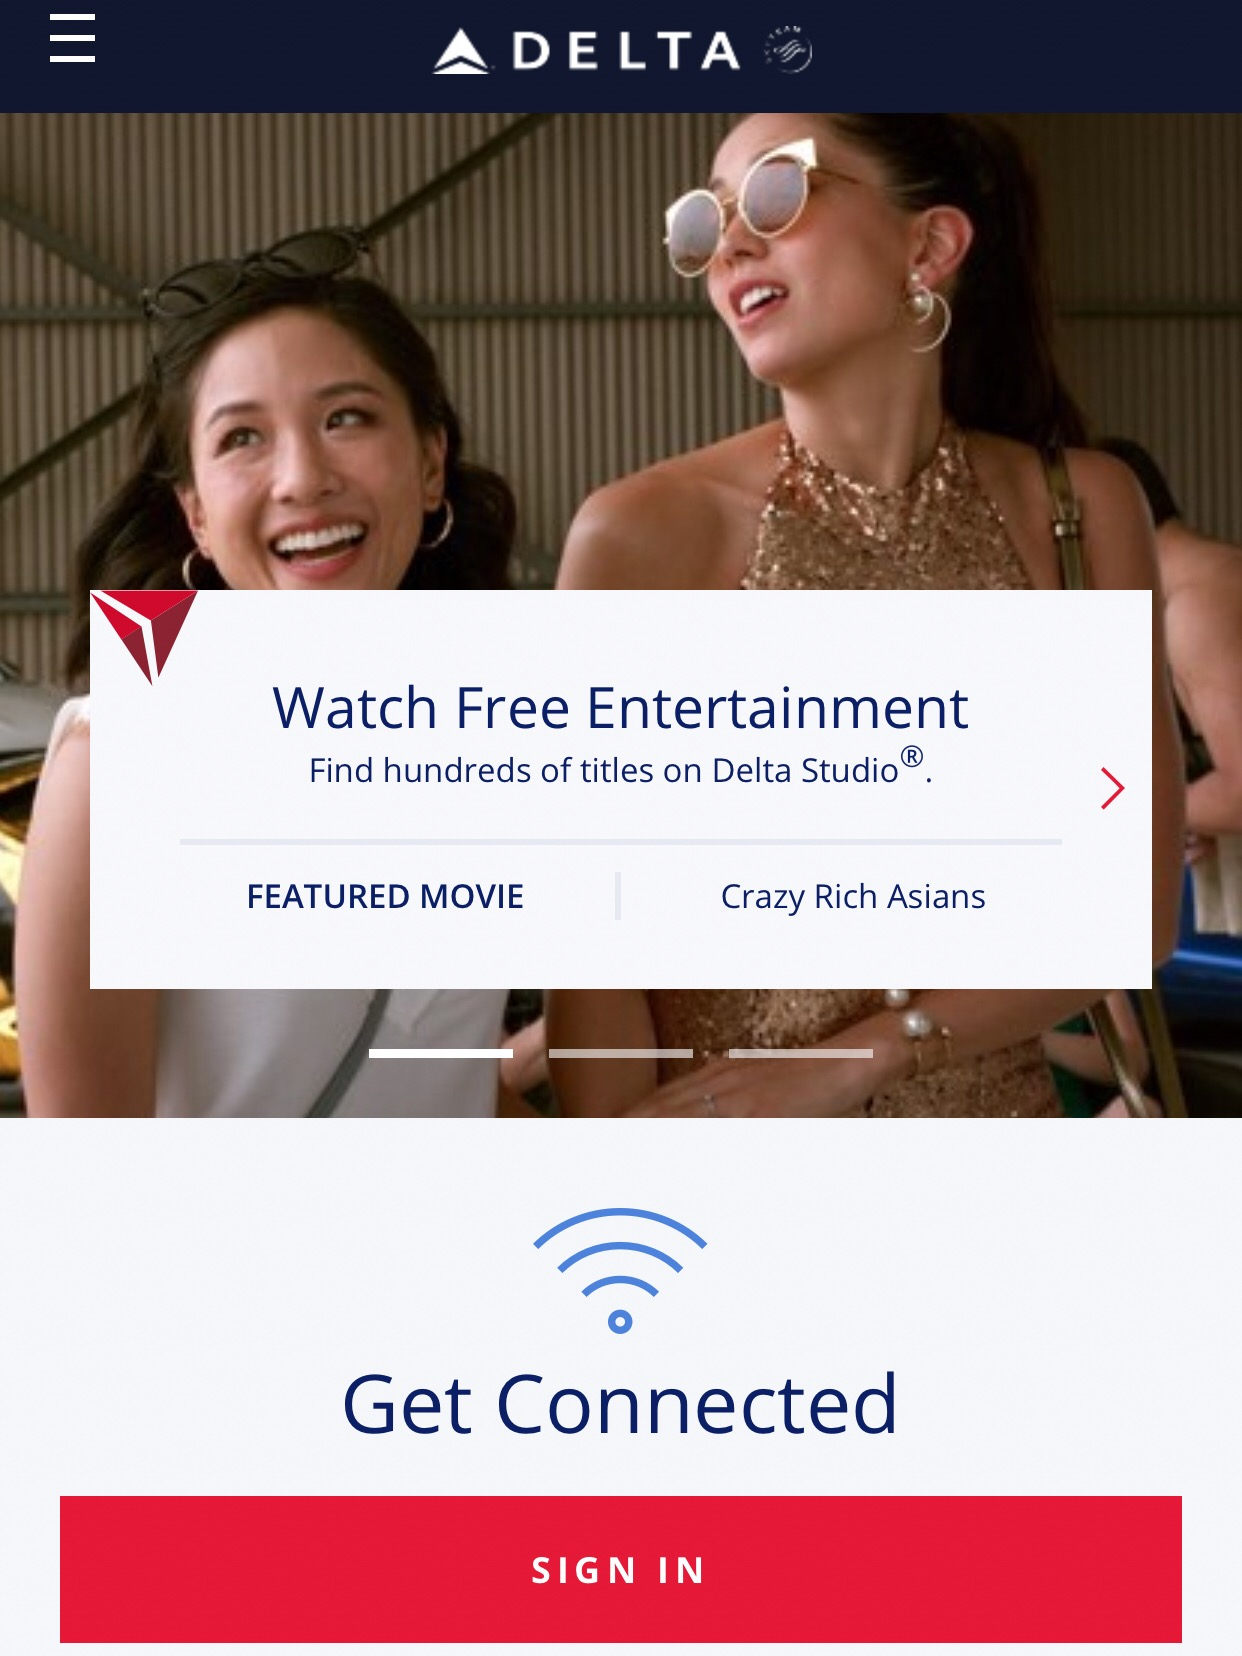 The streaming content includes several new releases, as well as some classic movies and shows.